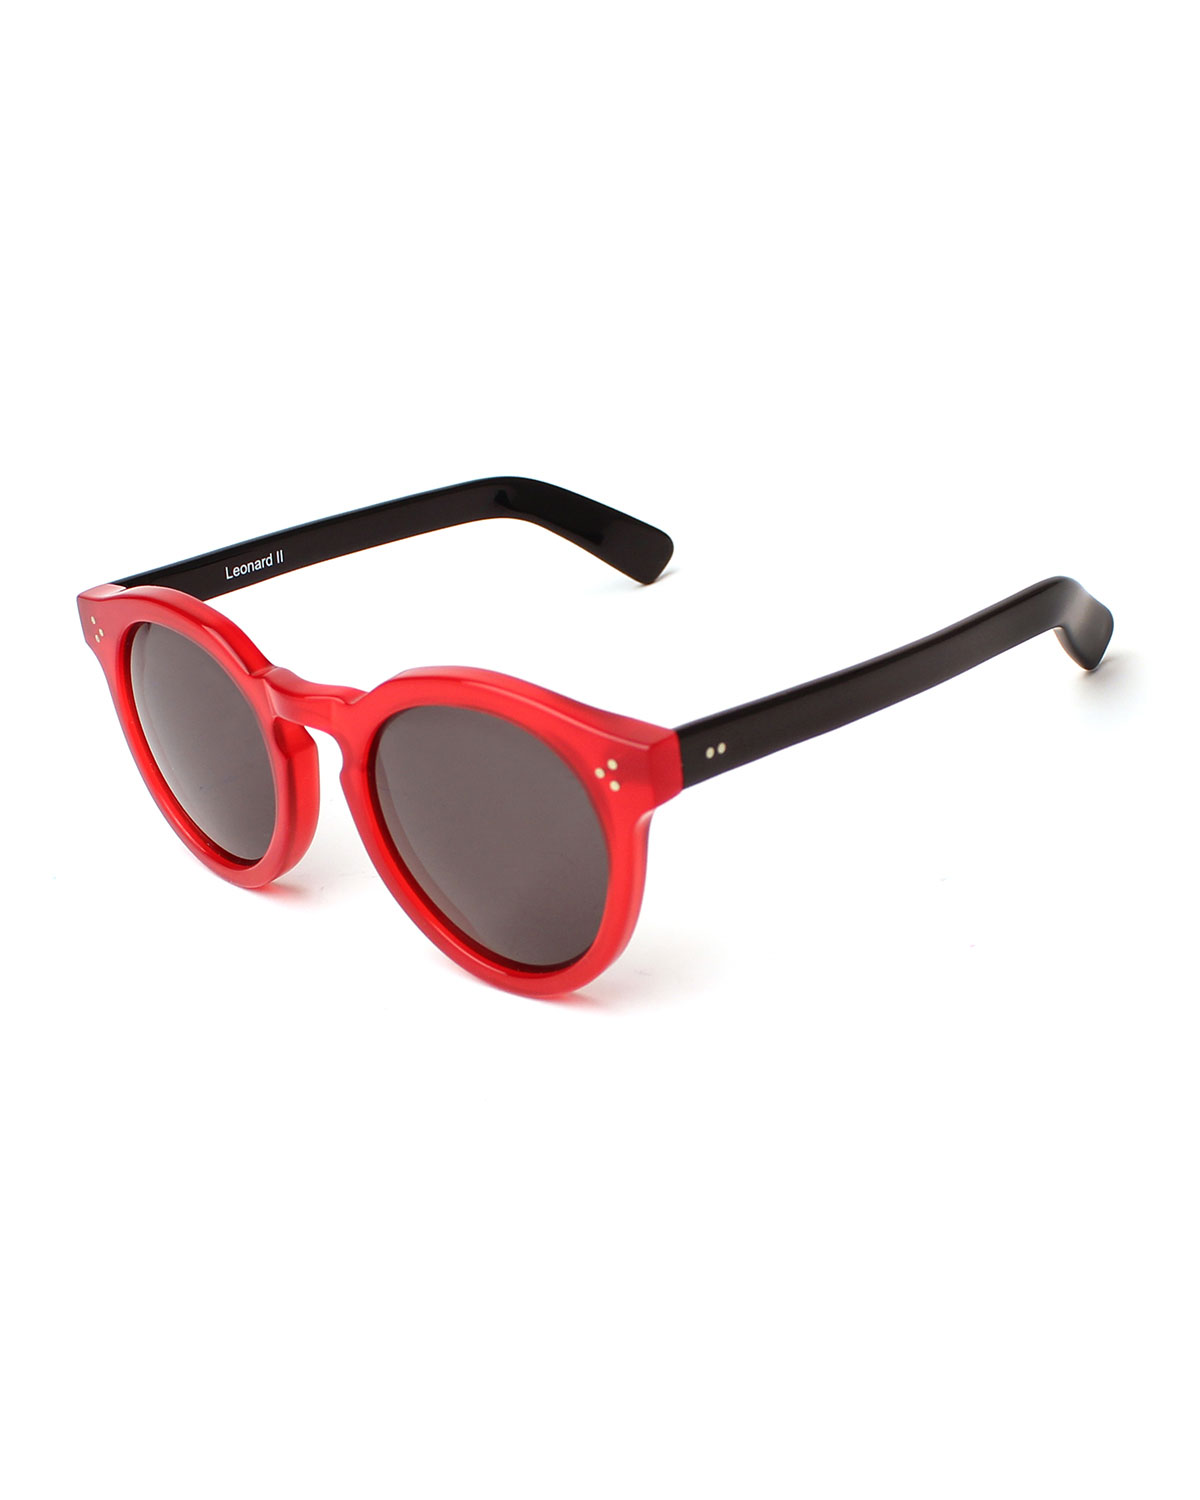 Leonard II Two-Tone Sunglasses, Red/Black